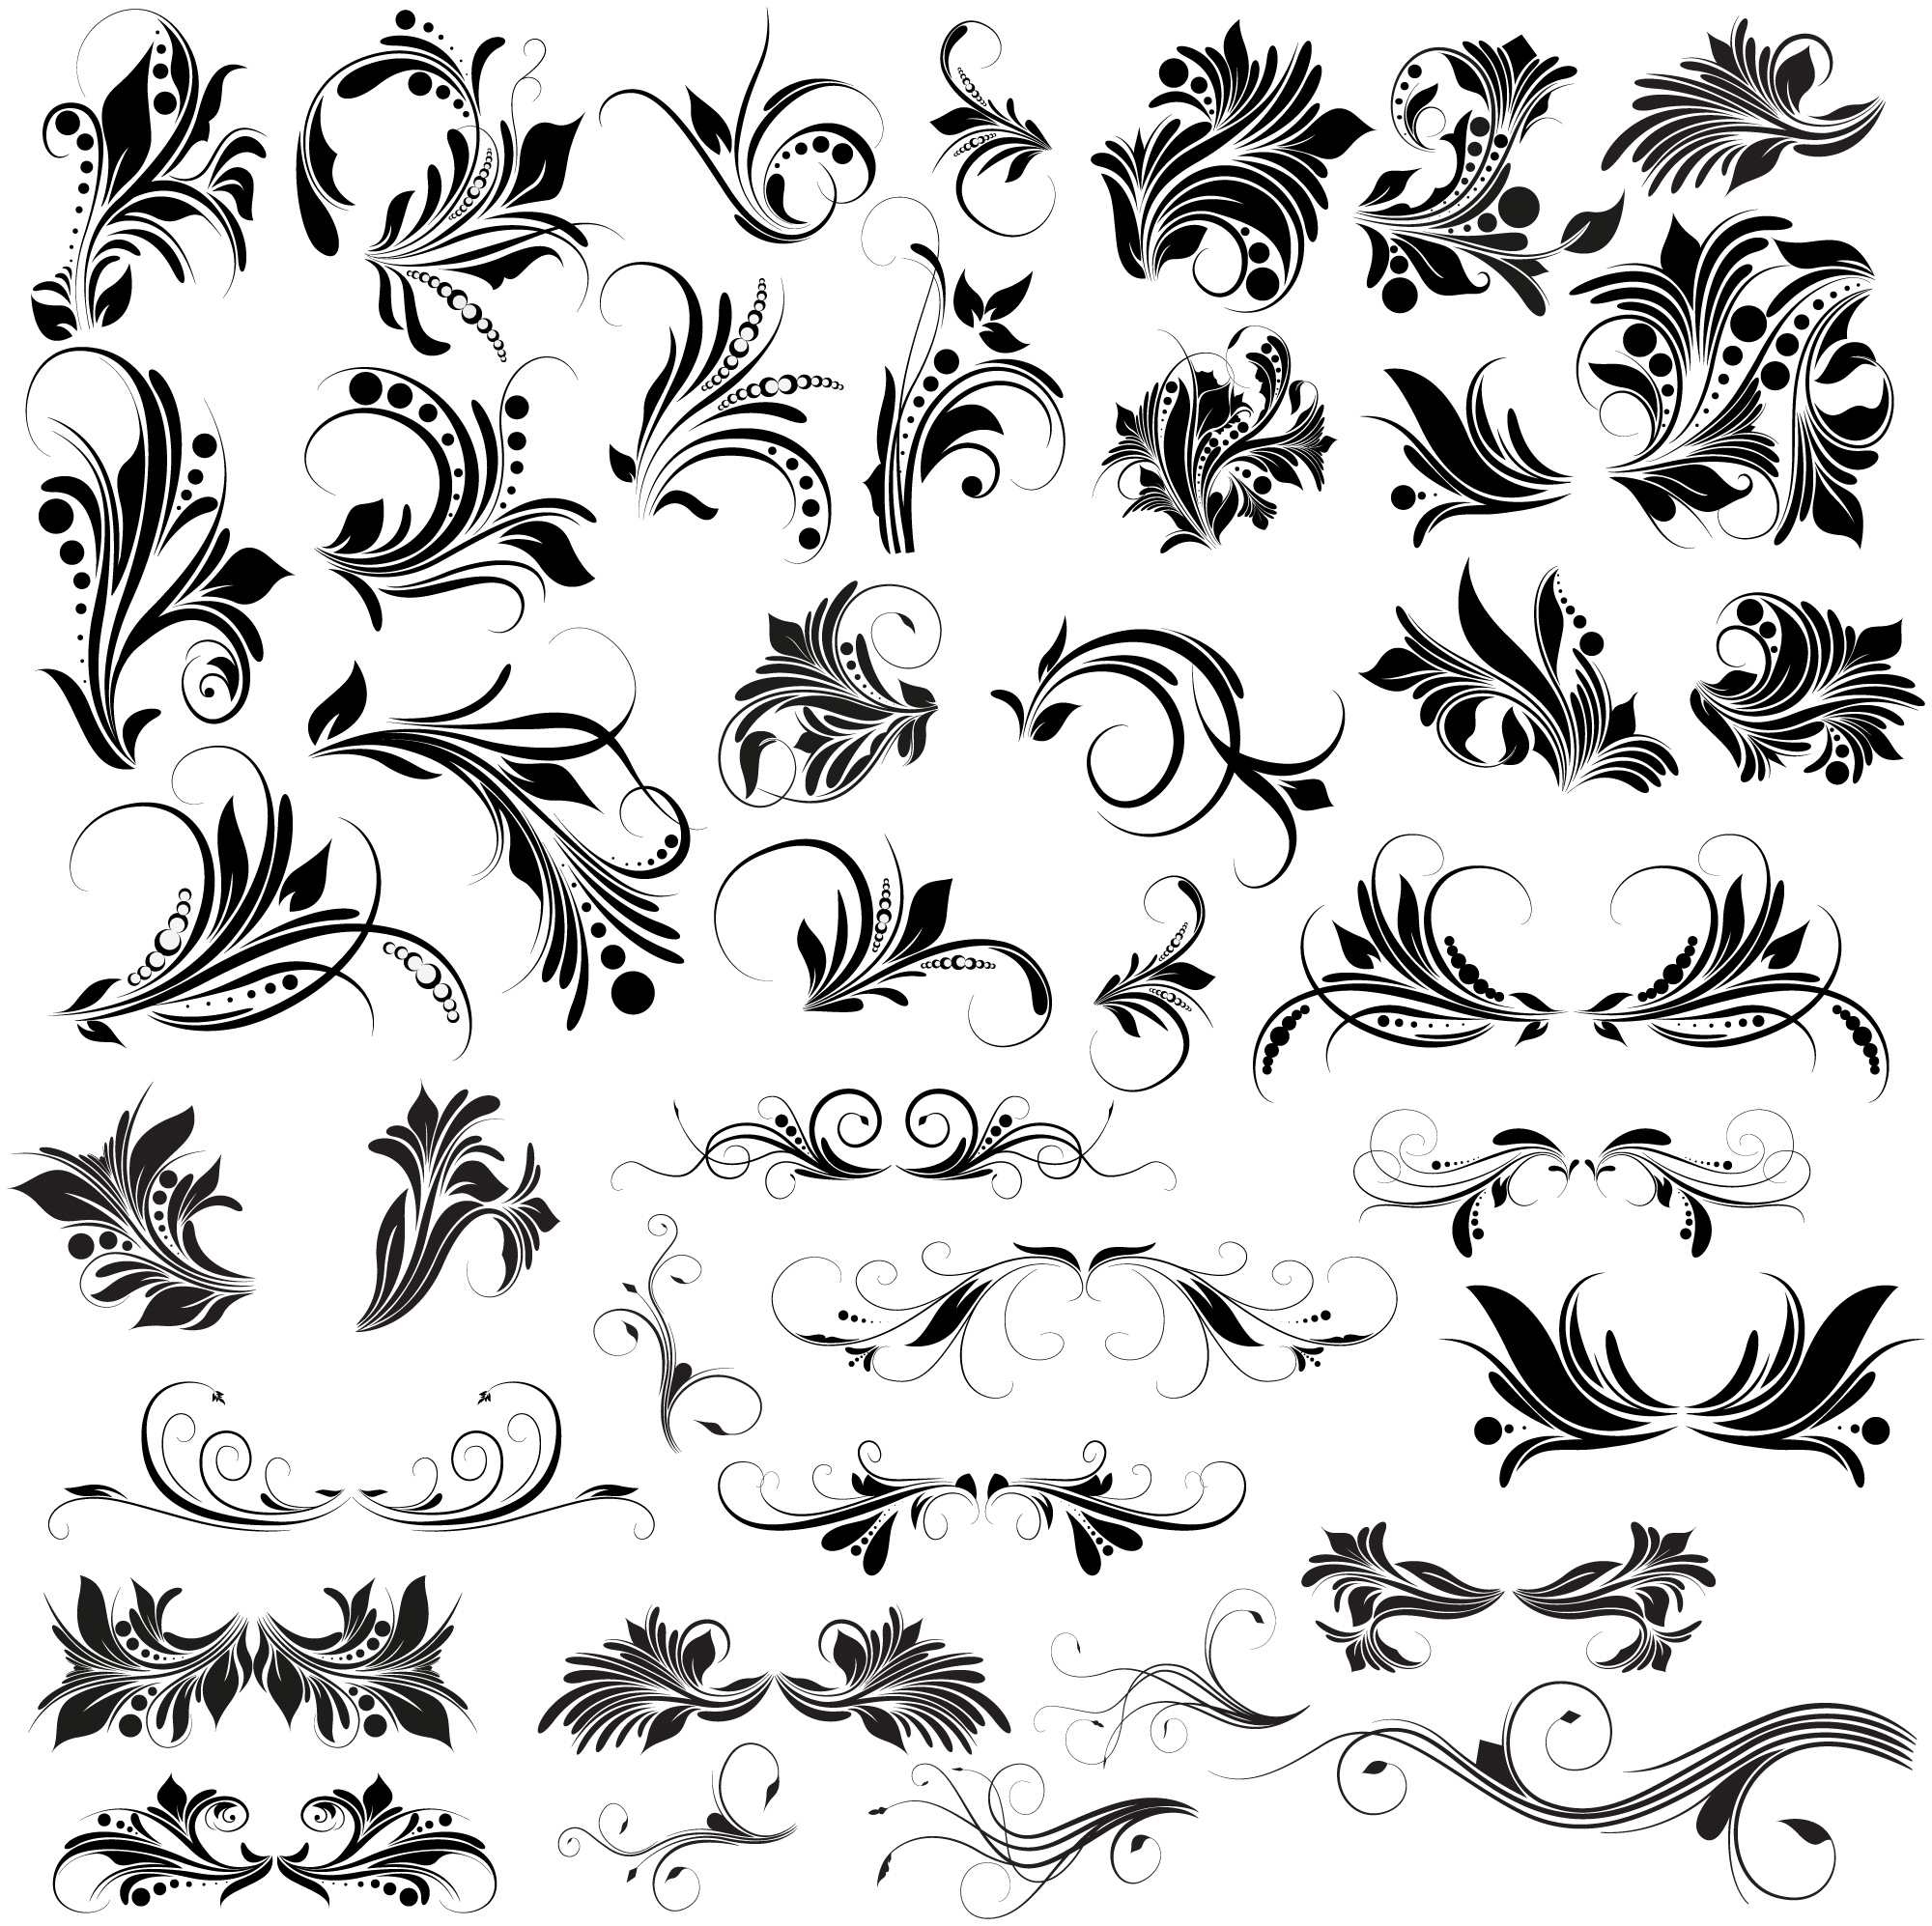 2000x1994 Floral Vectors, Brushes, Png, Shapes Amp Pictures